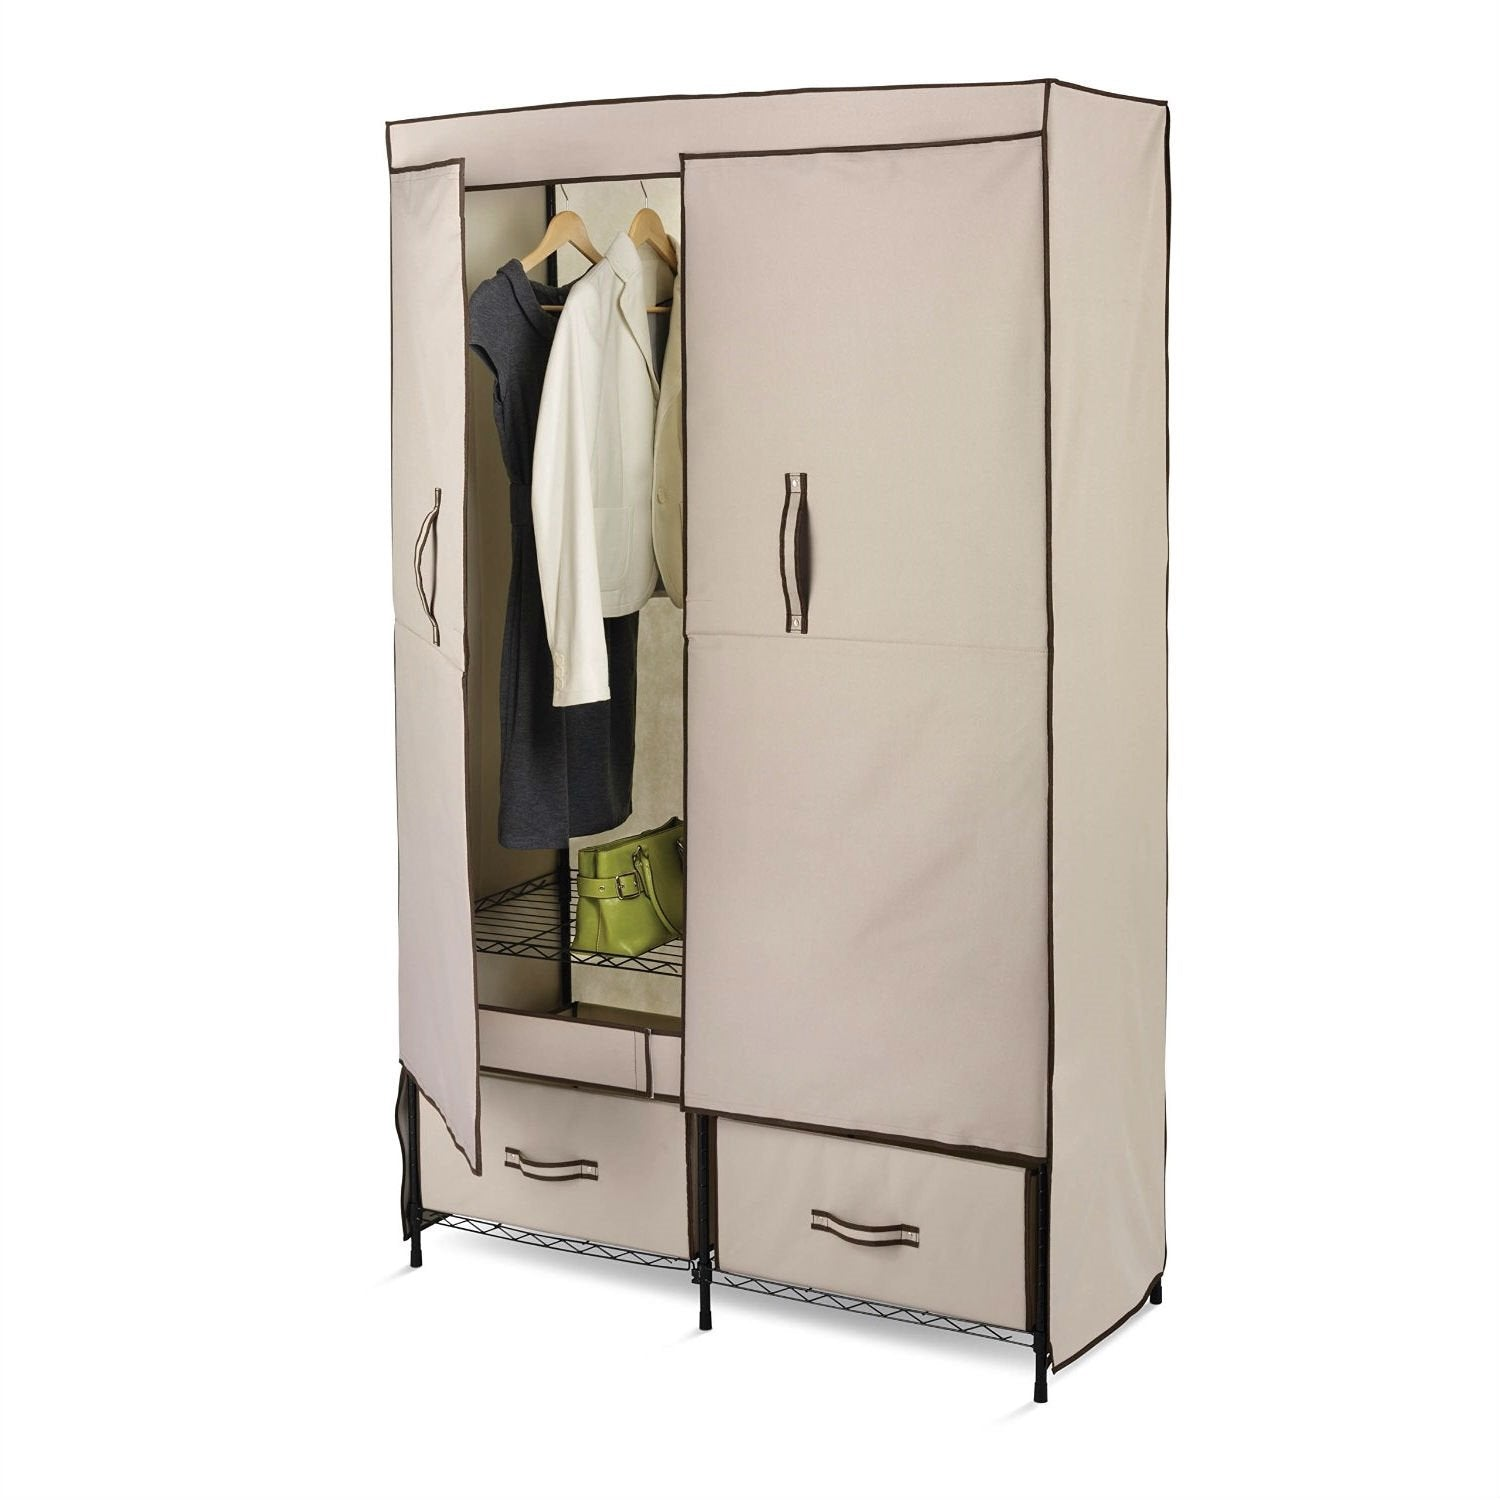 pic for ideas close best wardrobe armoire bedroom interesting closet of hanging clothes